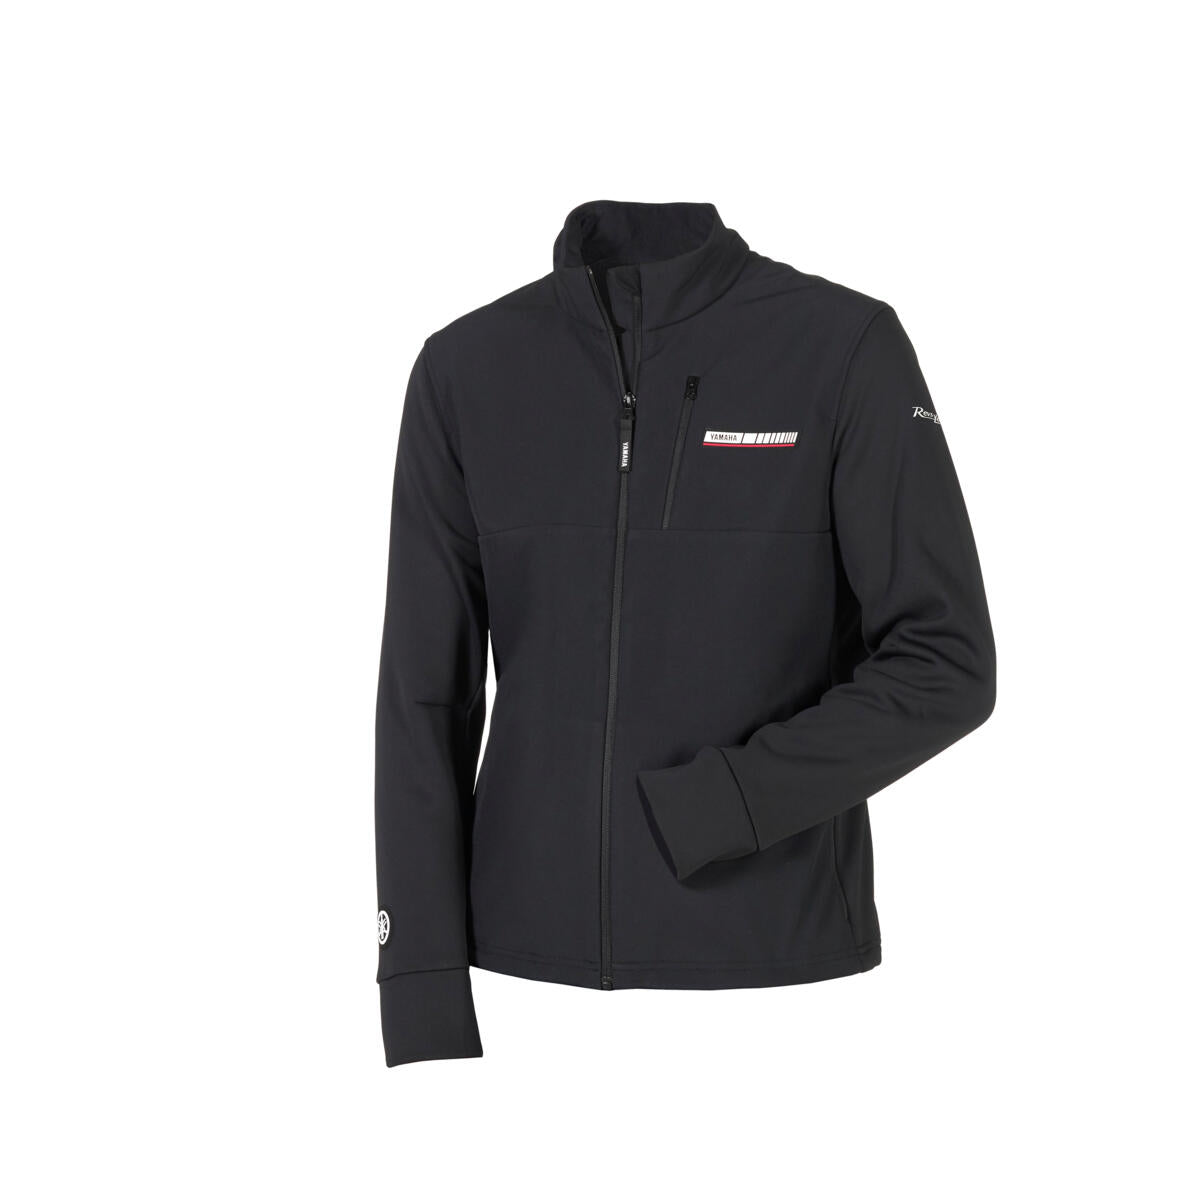 REVS Men's Softshell